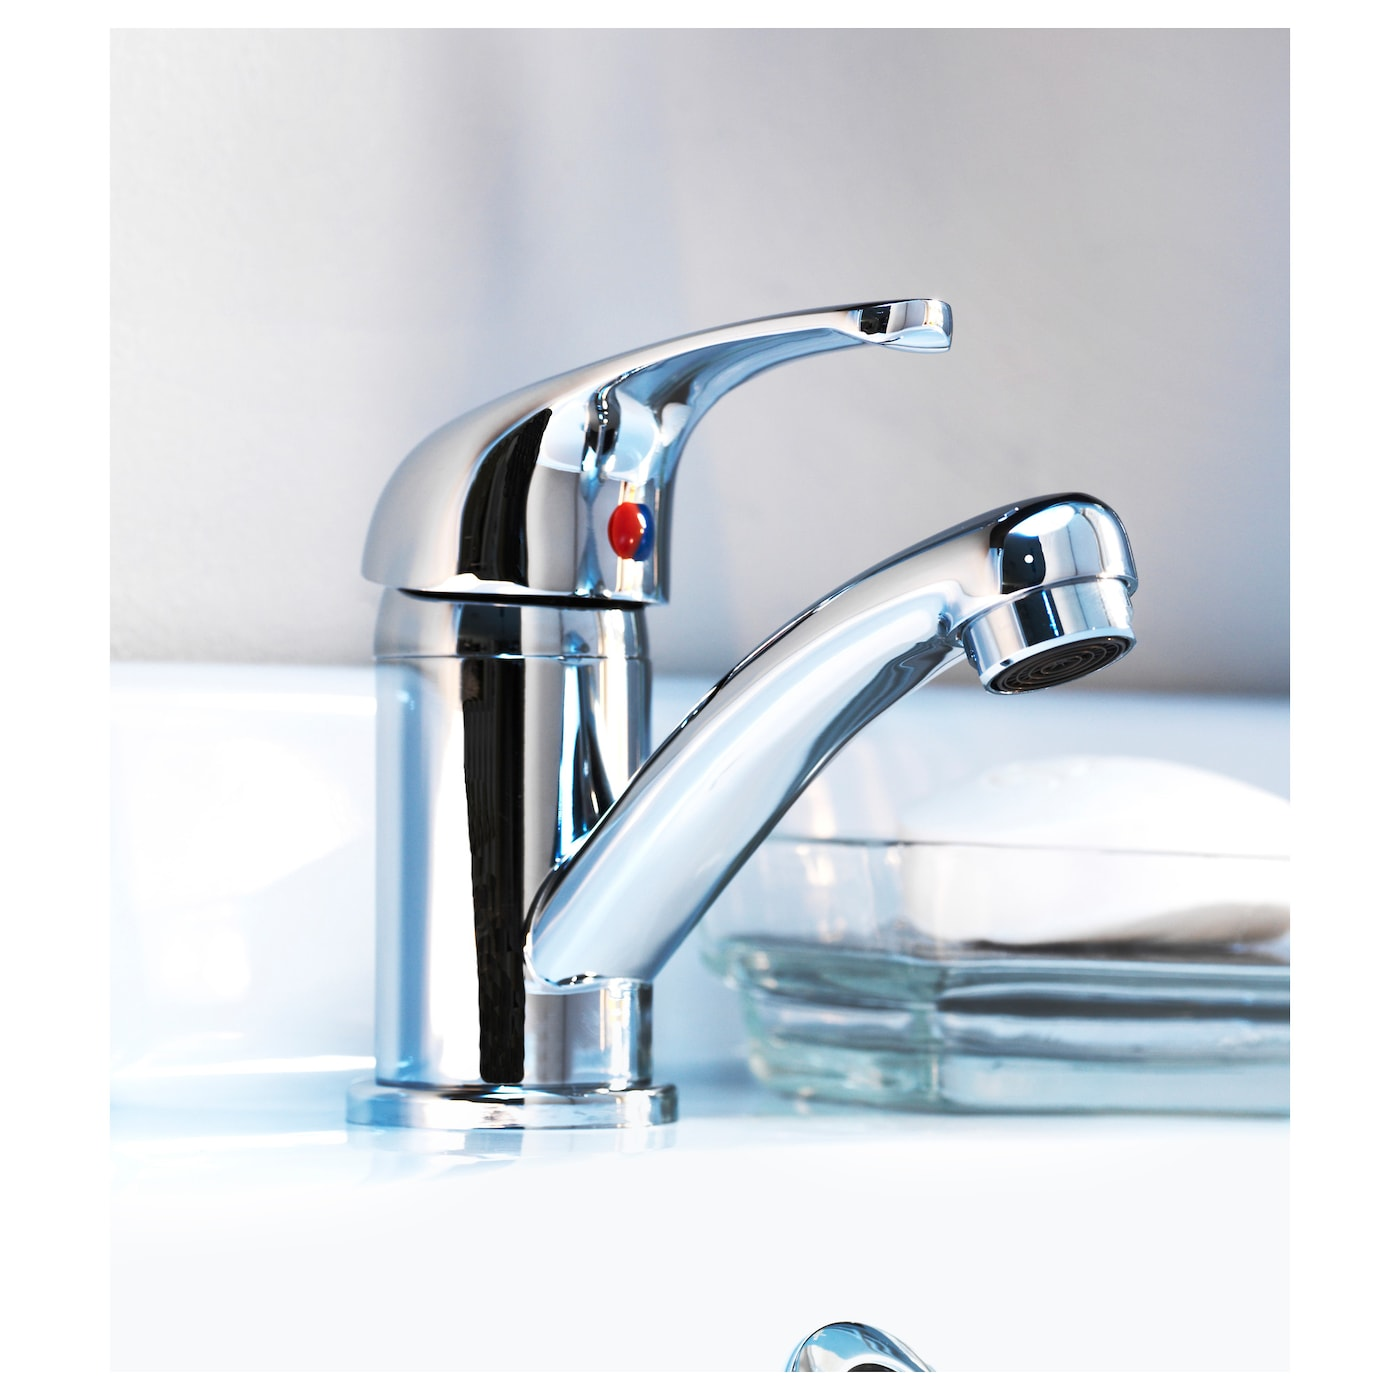 IKEA OLSKÄR wash-basin mixer tap 10 year guarantee. Read about the terms in the guarantee brochure.